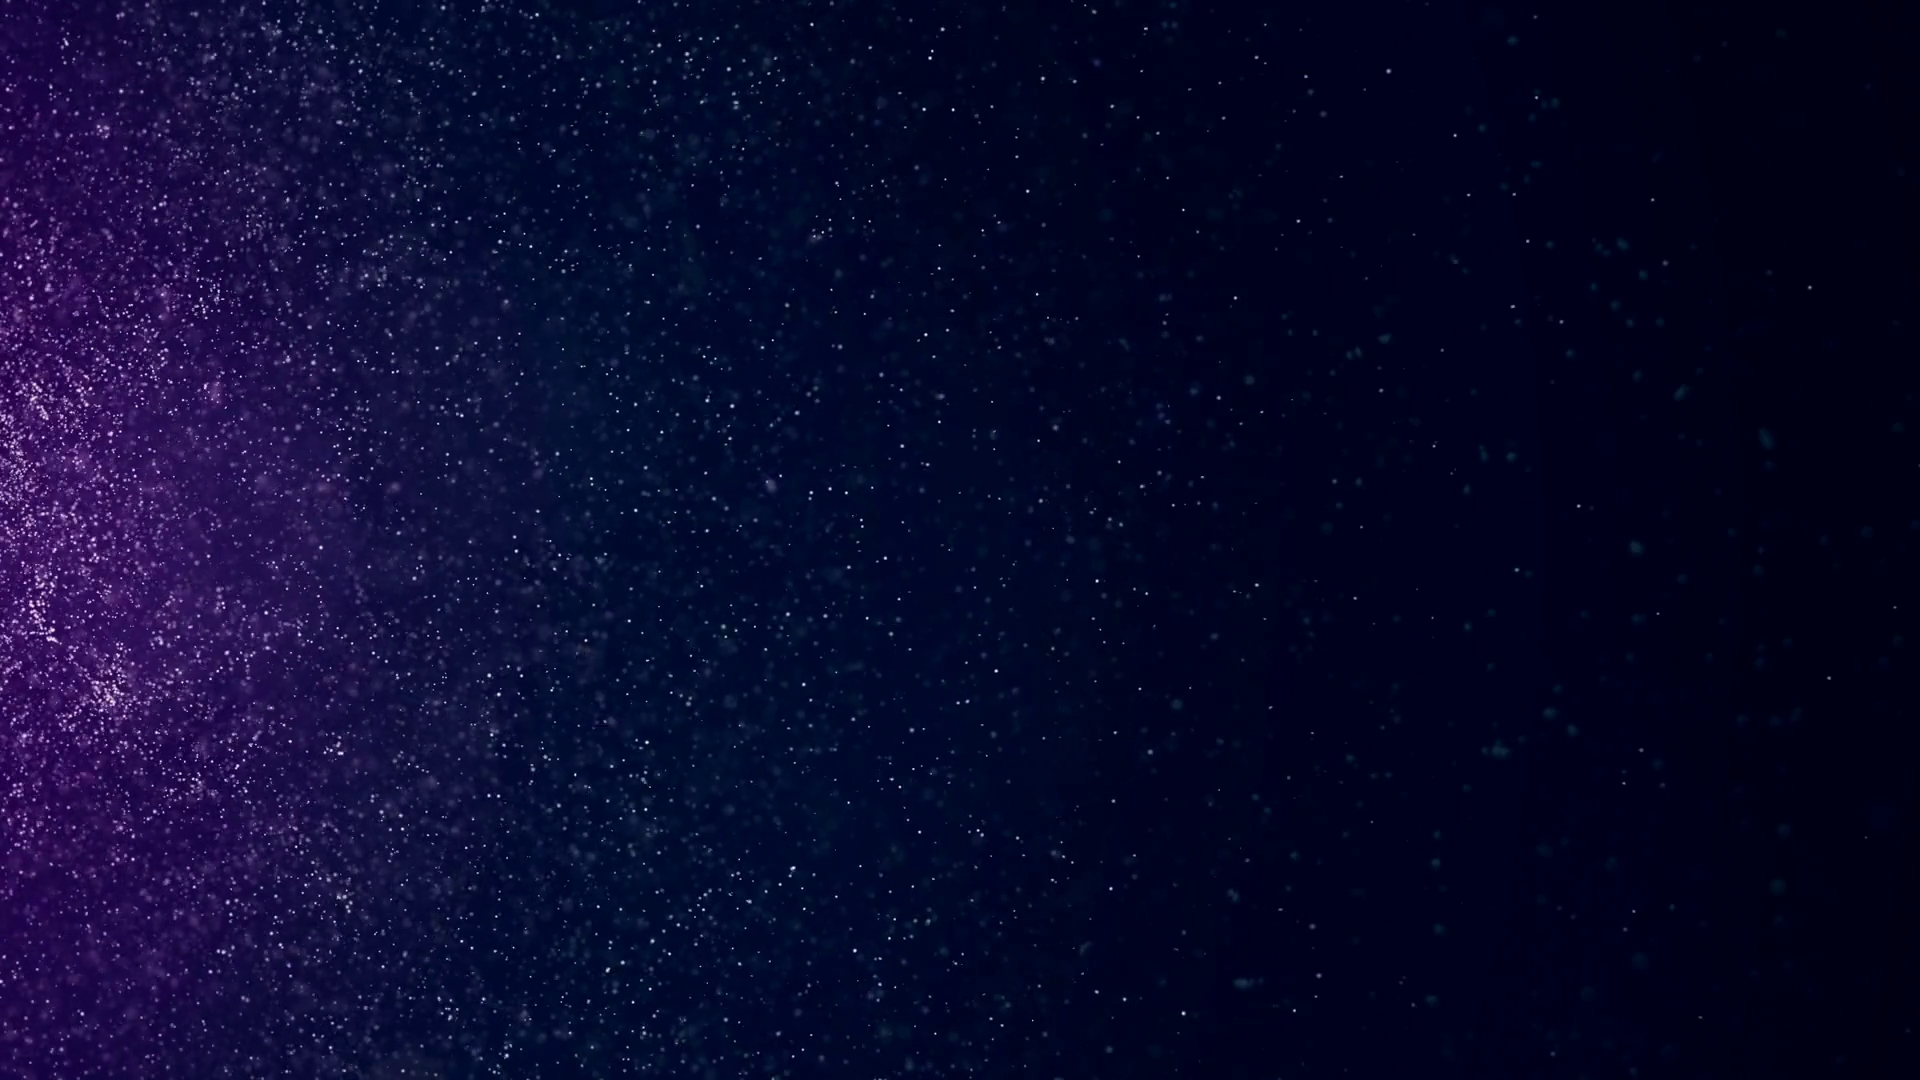 blue and purple abstract background motion background - videoblocks